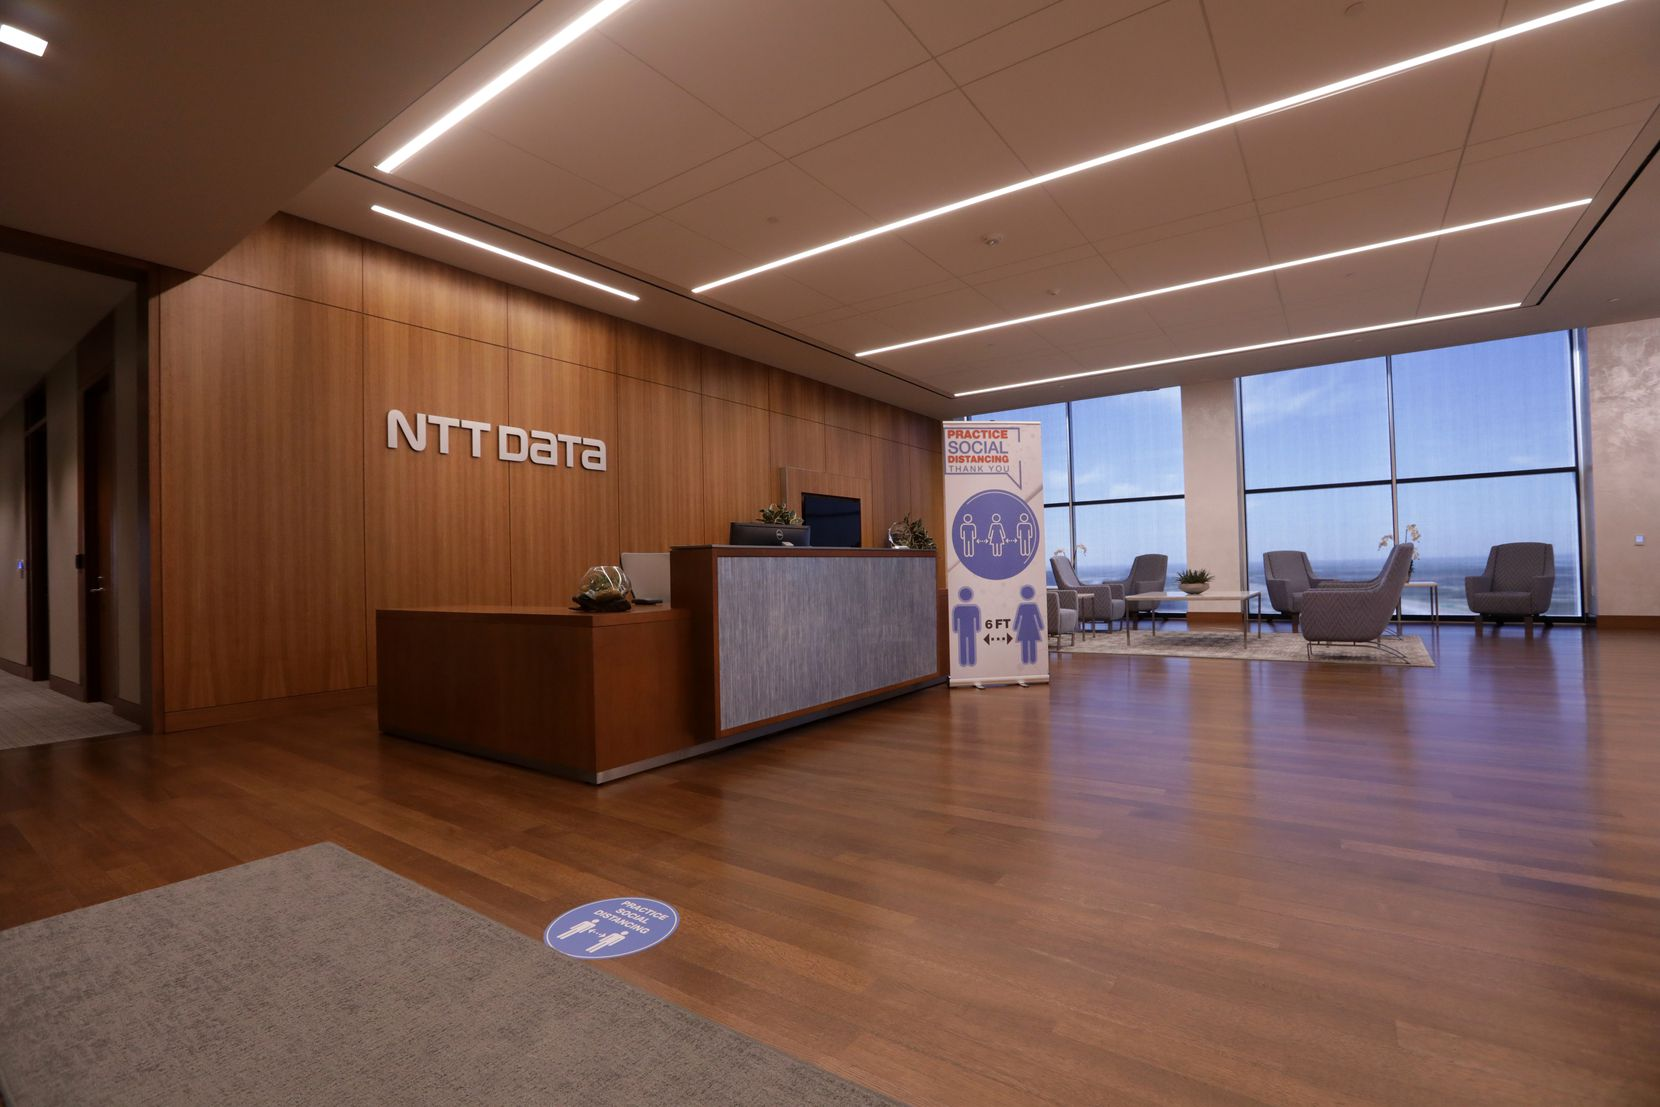 NTT Data Services has 3,000 employees in North Texas, including those who work at the Plano headquarters -- when they're not working from home.